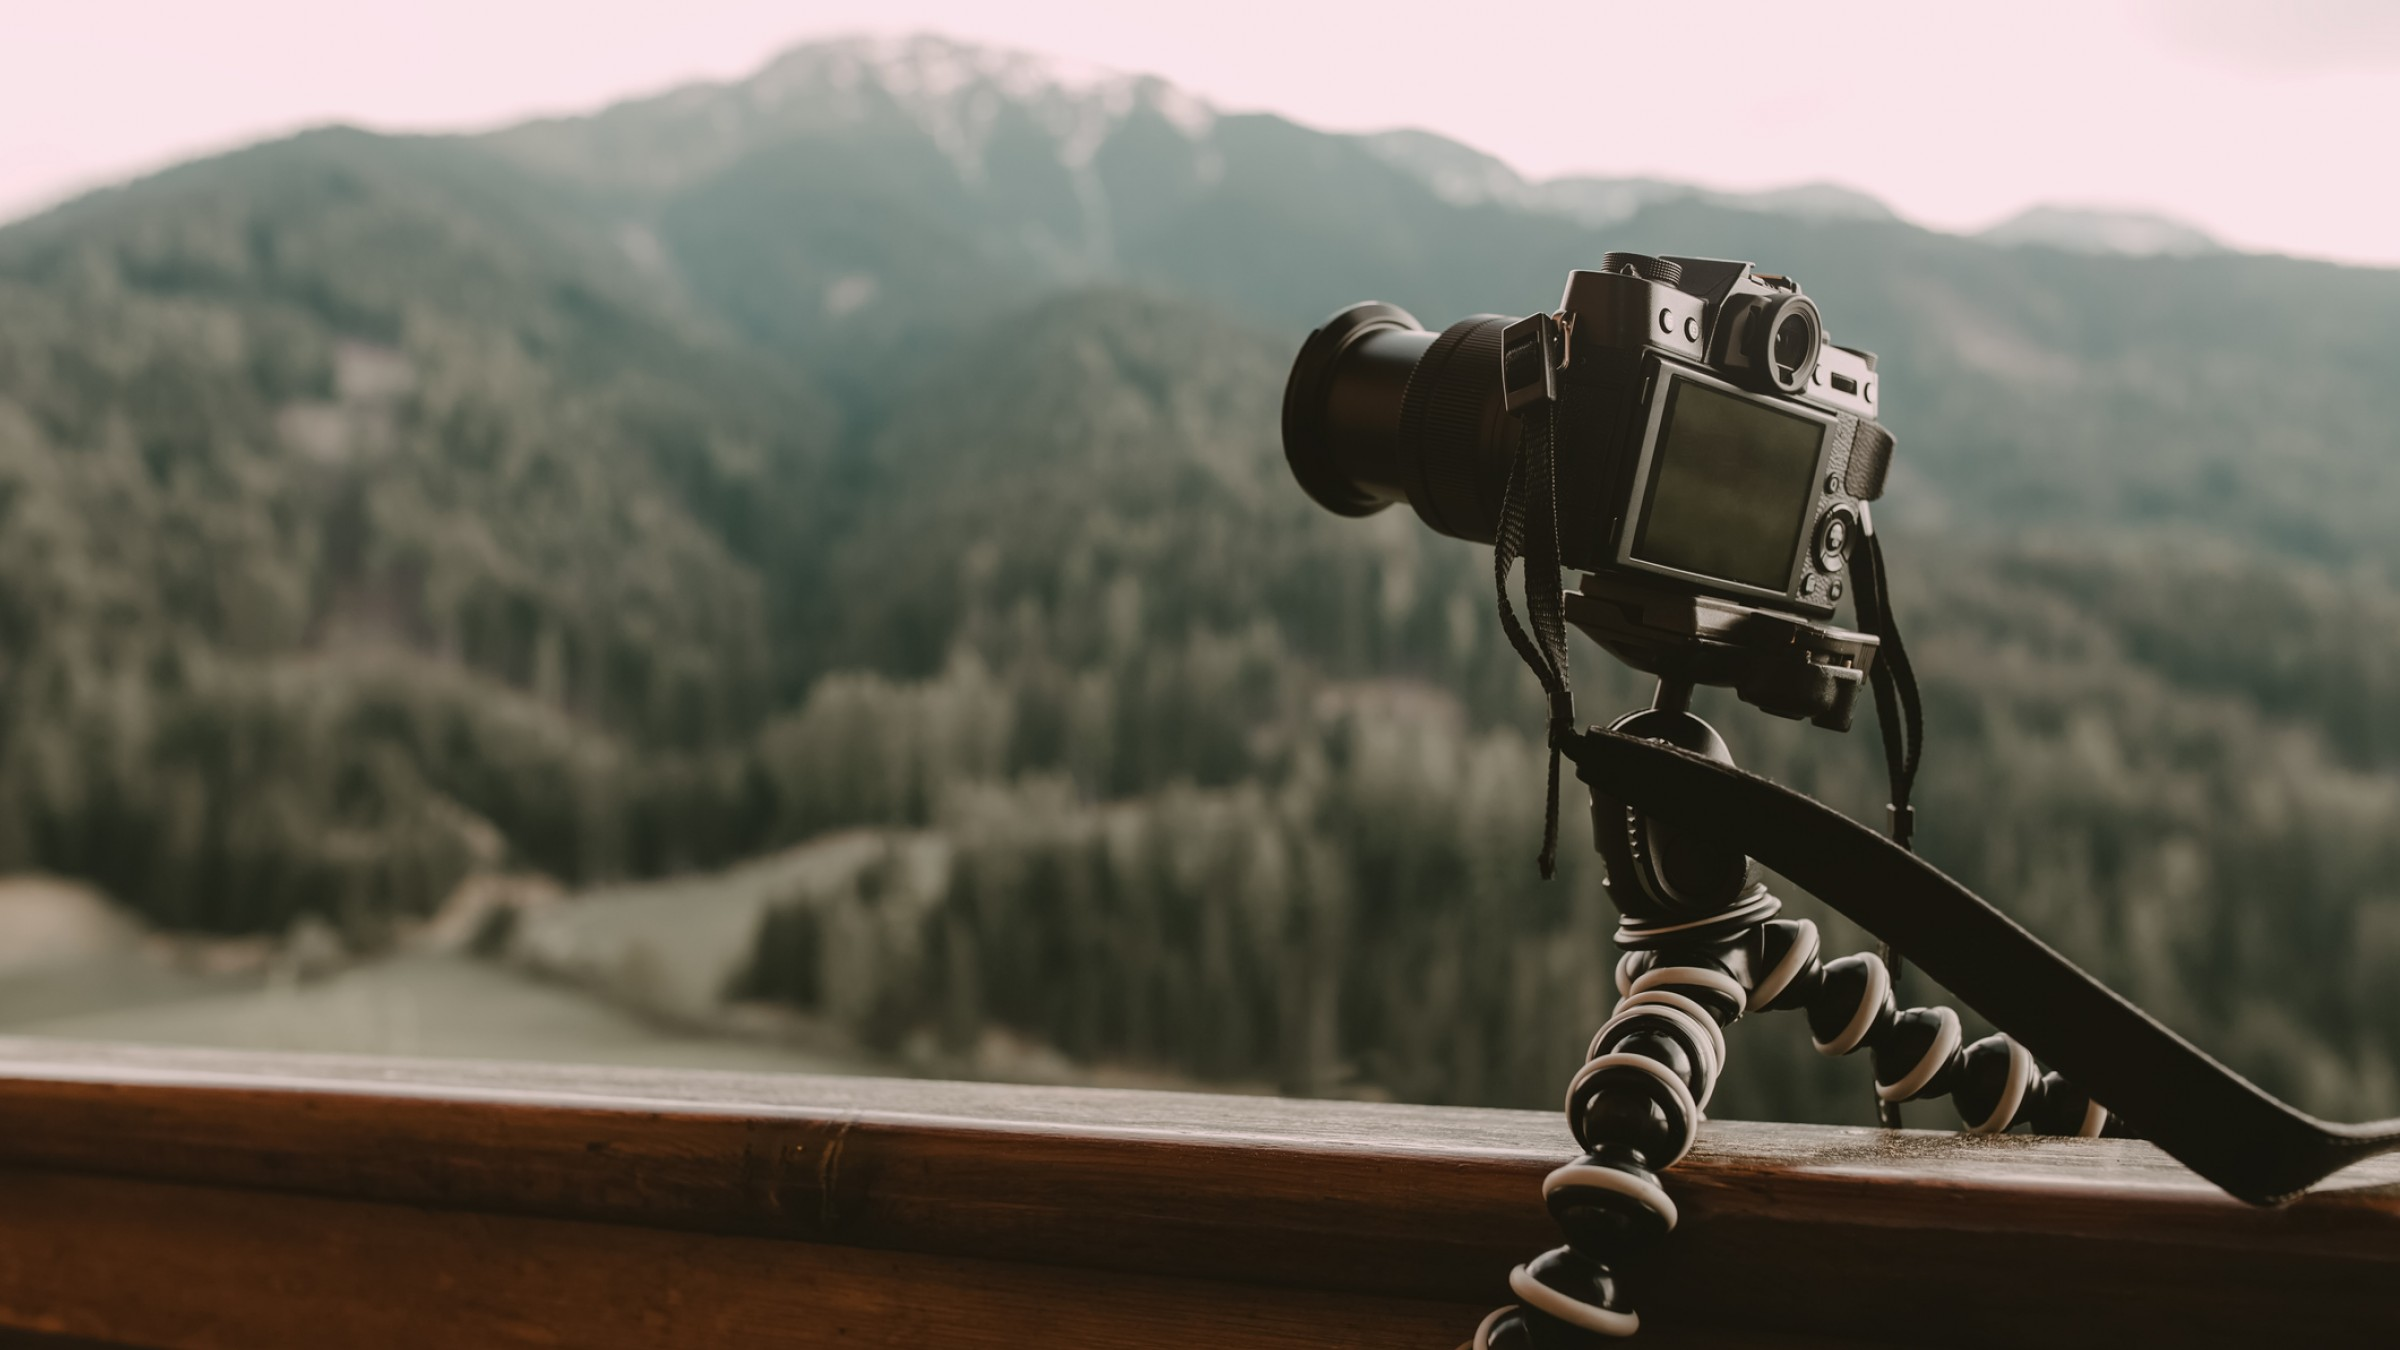 Get More Out of Your GorillaPod with These Creative Tricks